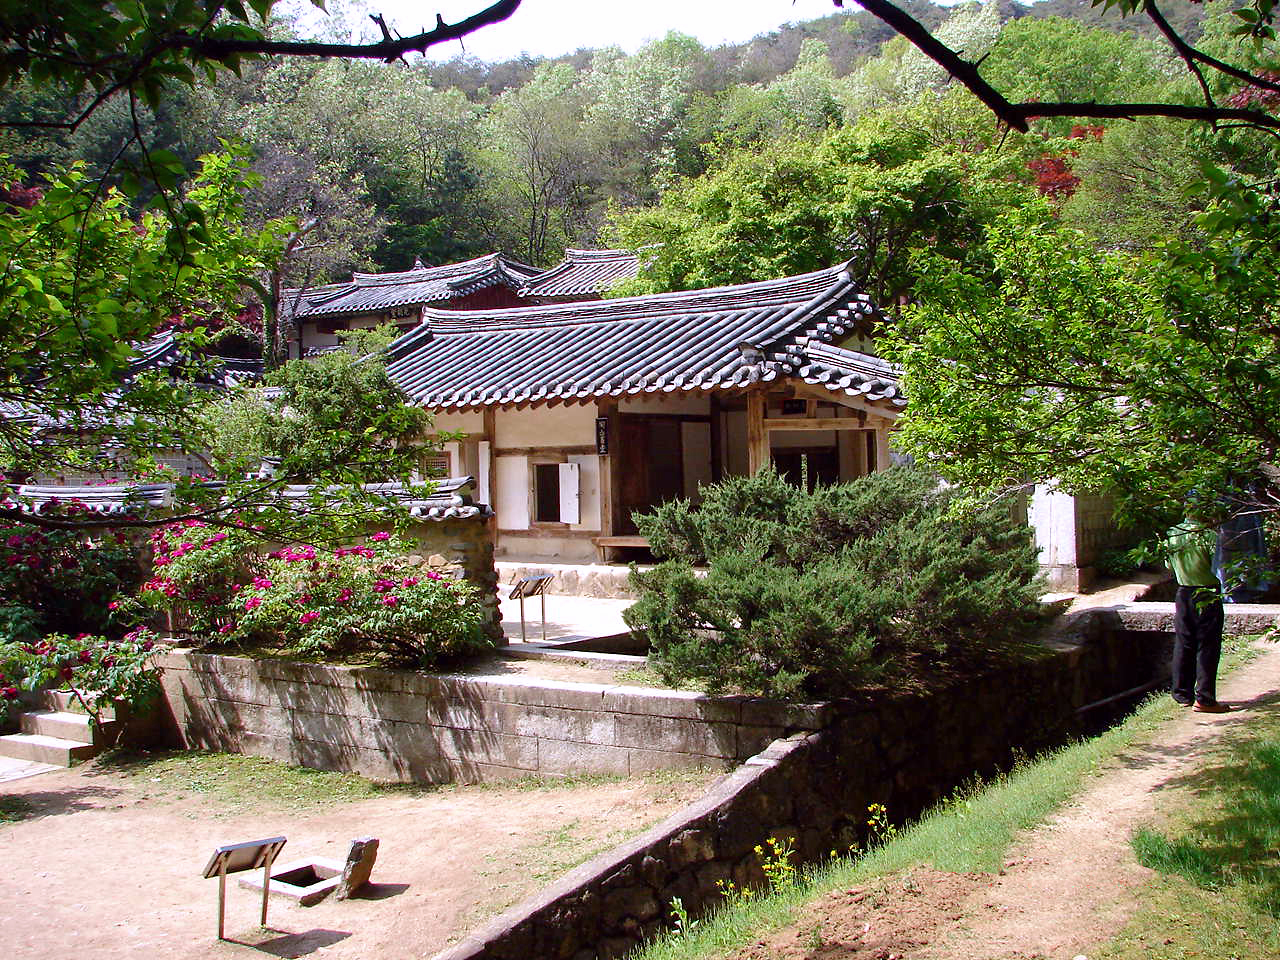 Dosan Seowon was established in 1574 in Andong, South Korea. Today, it stands as a UNESCO World Heritage and education site.